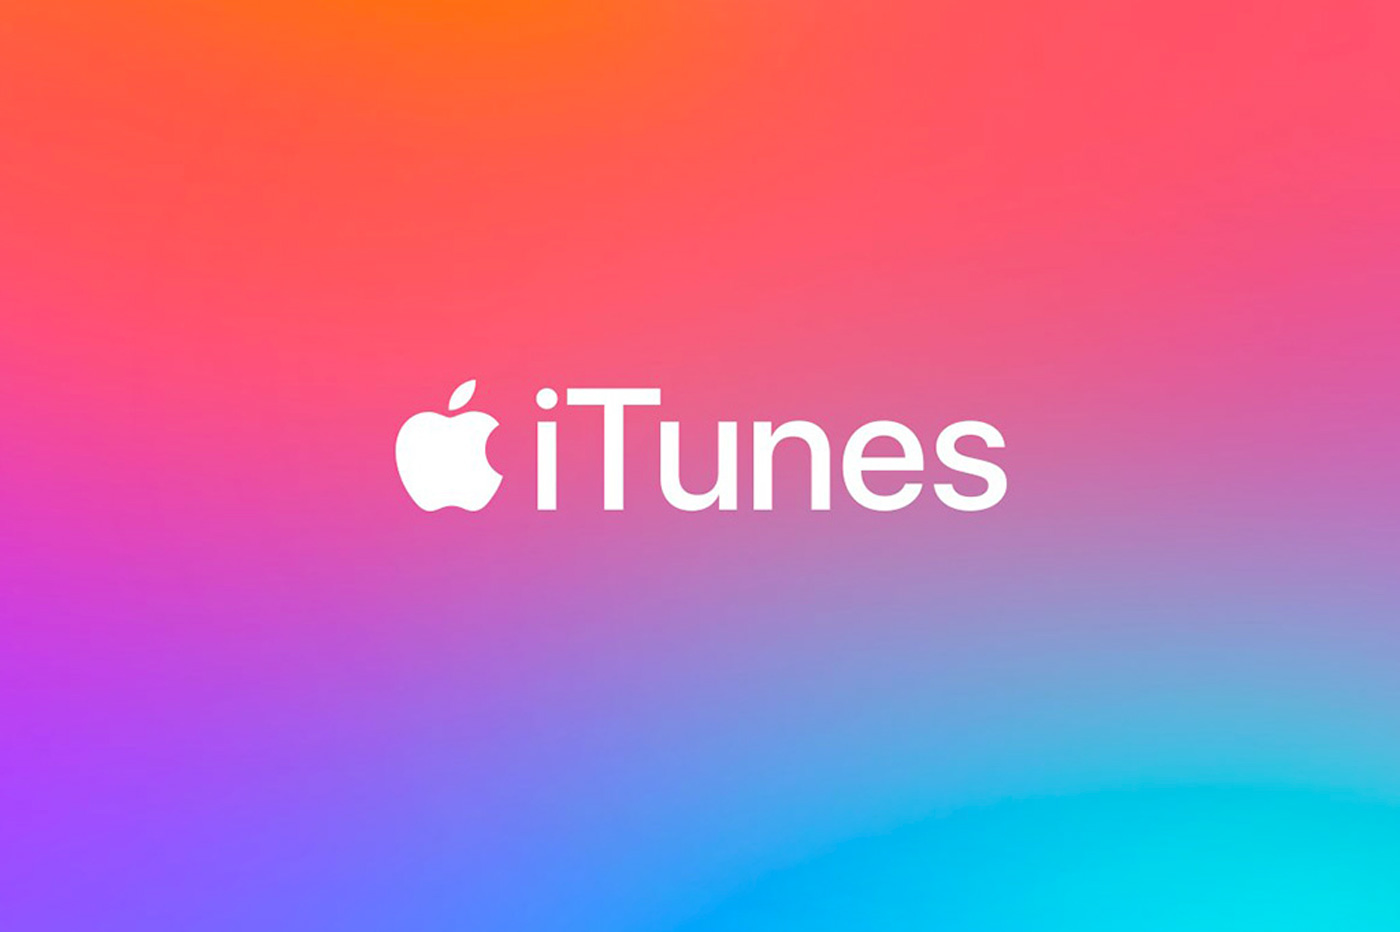 What causes iTunes error 0xe8000015